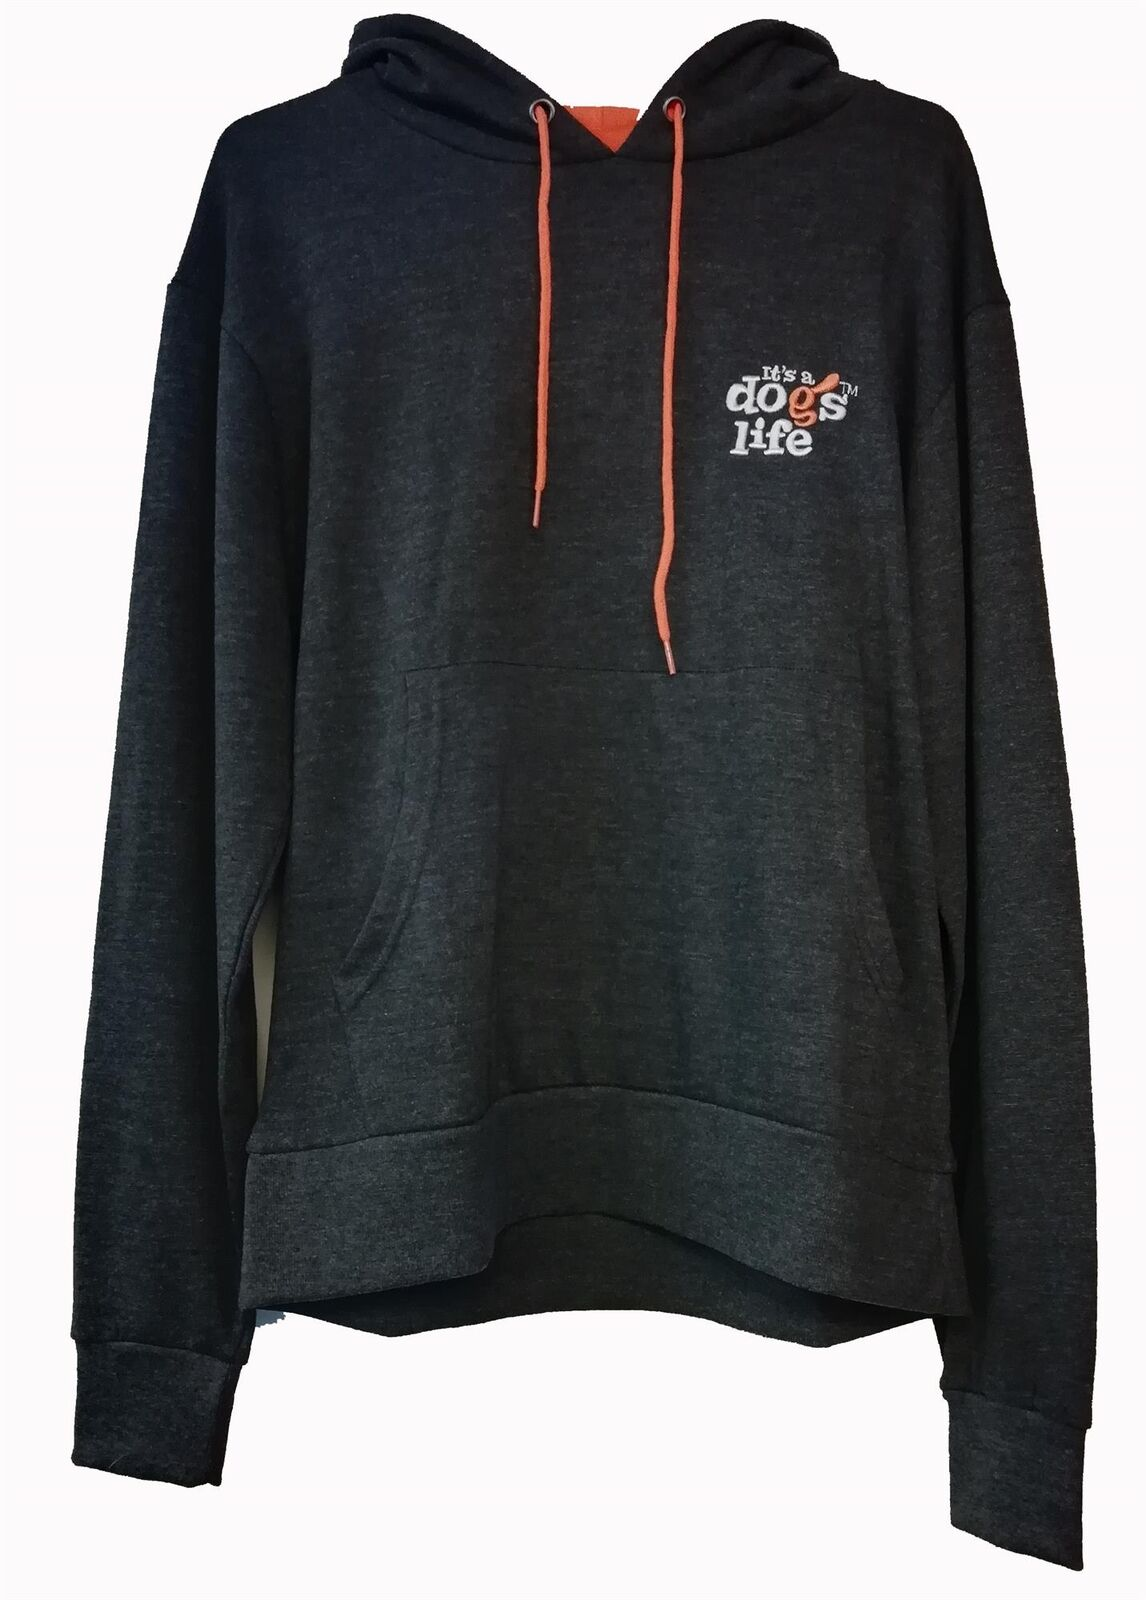 It's A Dogs Life - Over the Head Hoody